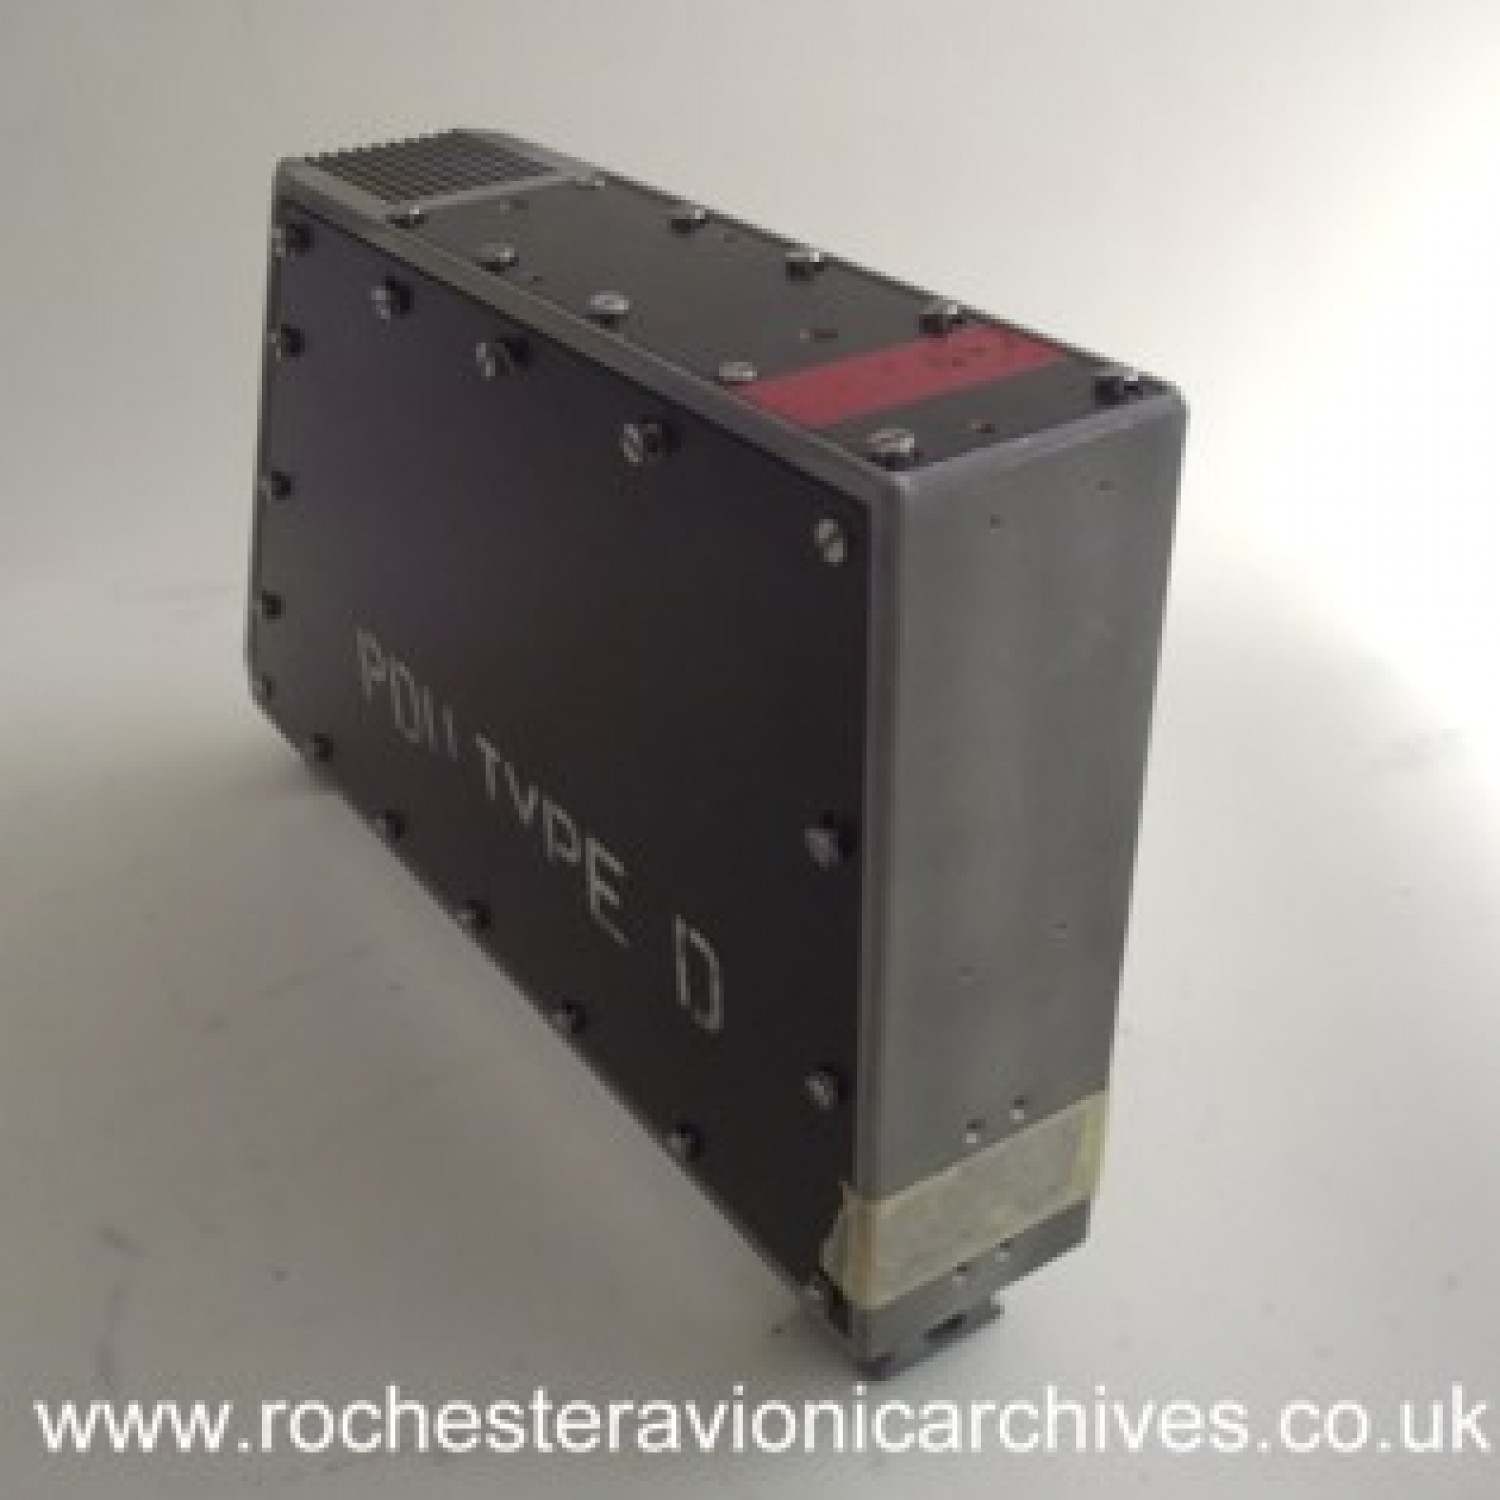 Pylon Decoder Unit (PDU) Type D (empty case)